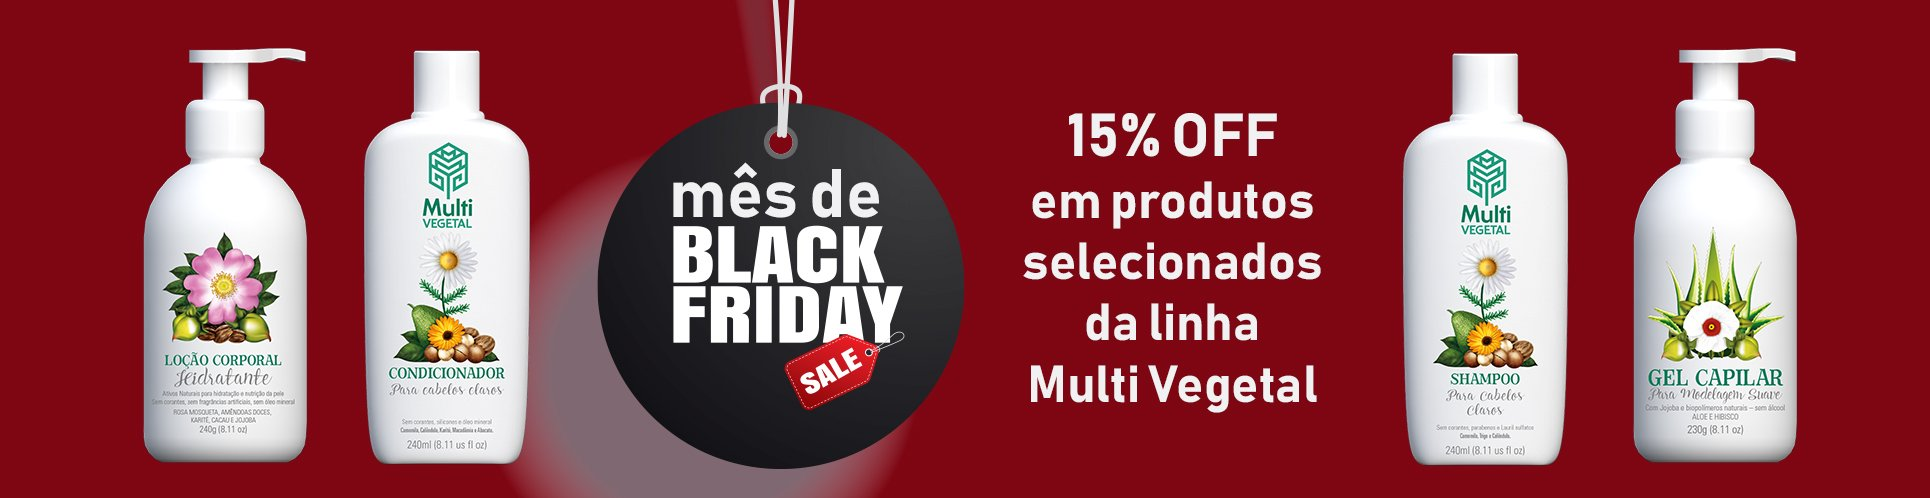 balck friday multi vegetal